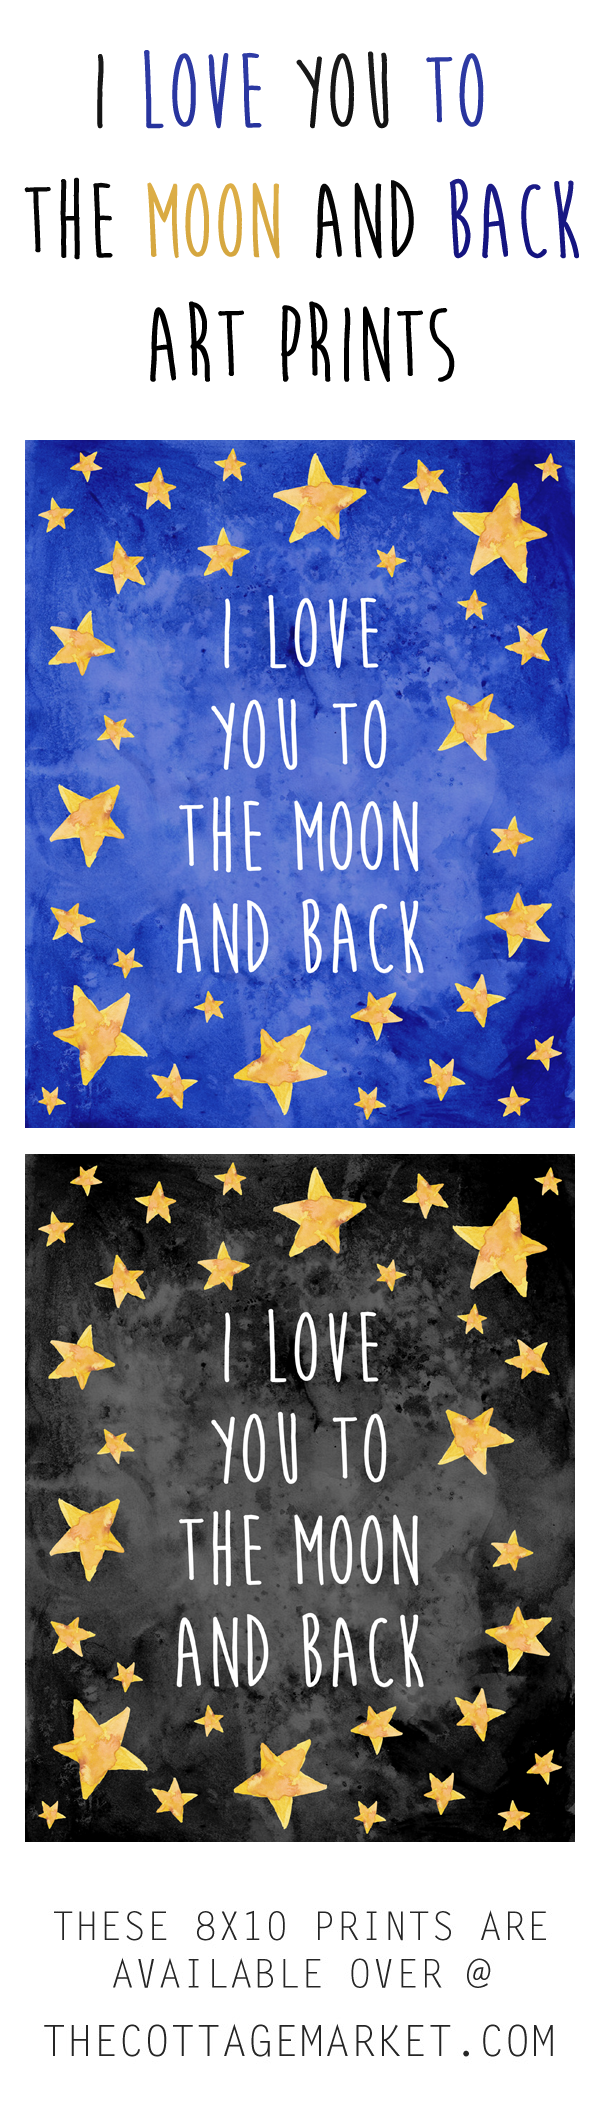 TCM-Printable-ILoveYouToTheMoonAndBack-TOWER